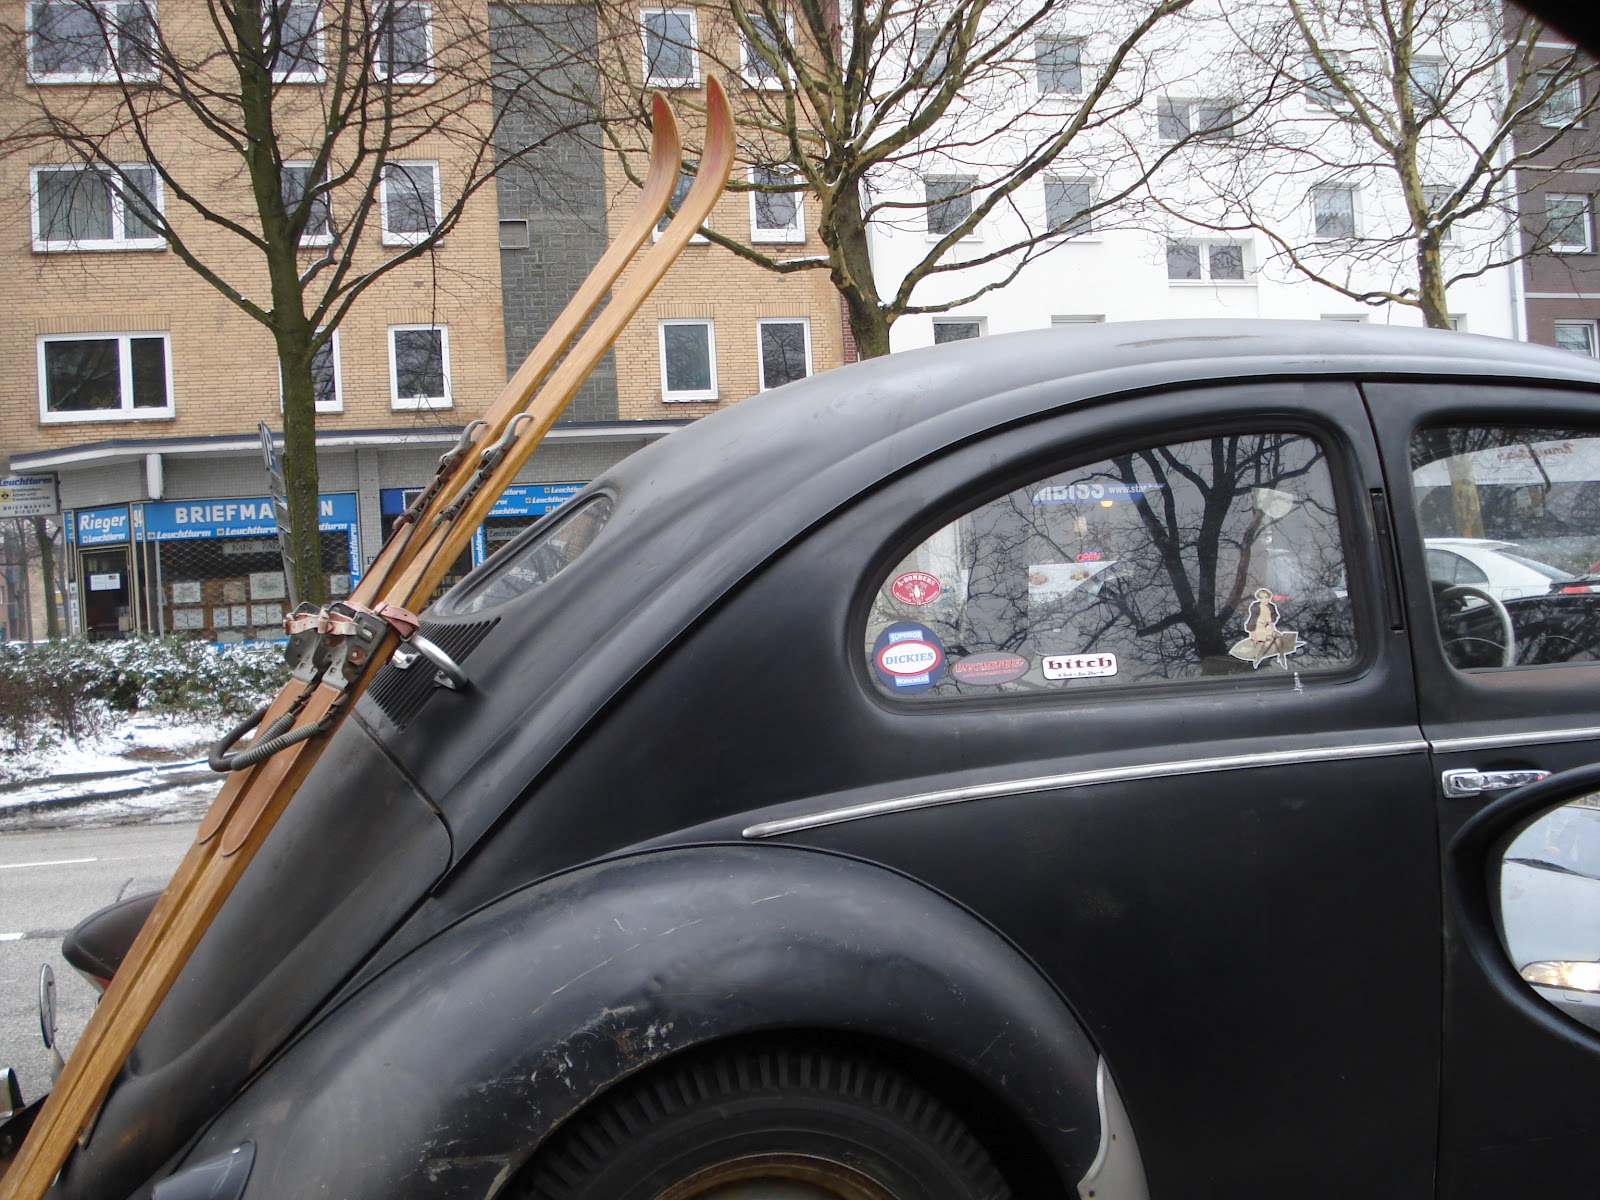 Life\'s Jewels on String: Vintage Cars in Hamburg - VW Beetle with Skis.